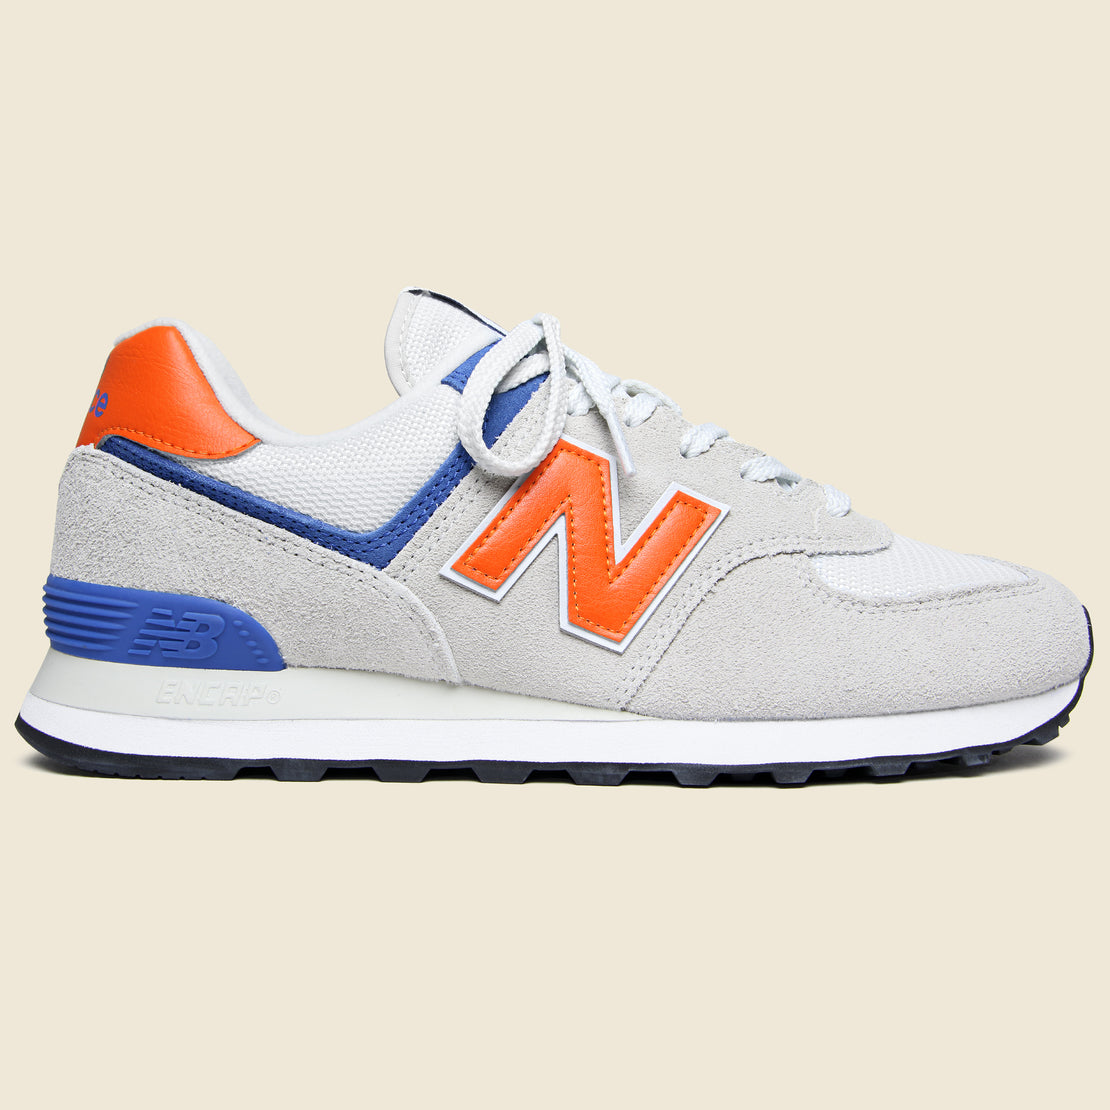 f04fcc0a59cab New Balance 574 Sneaker - Blue/Orange ...